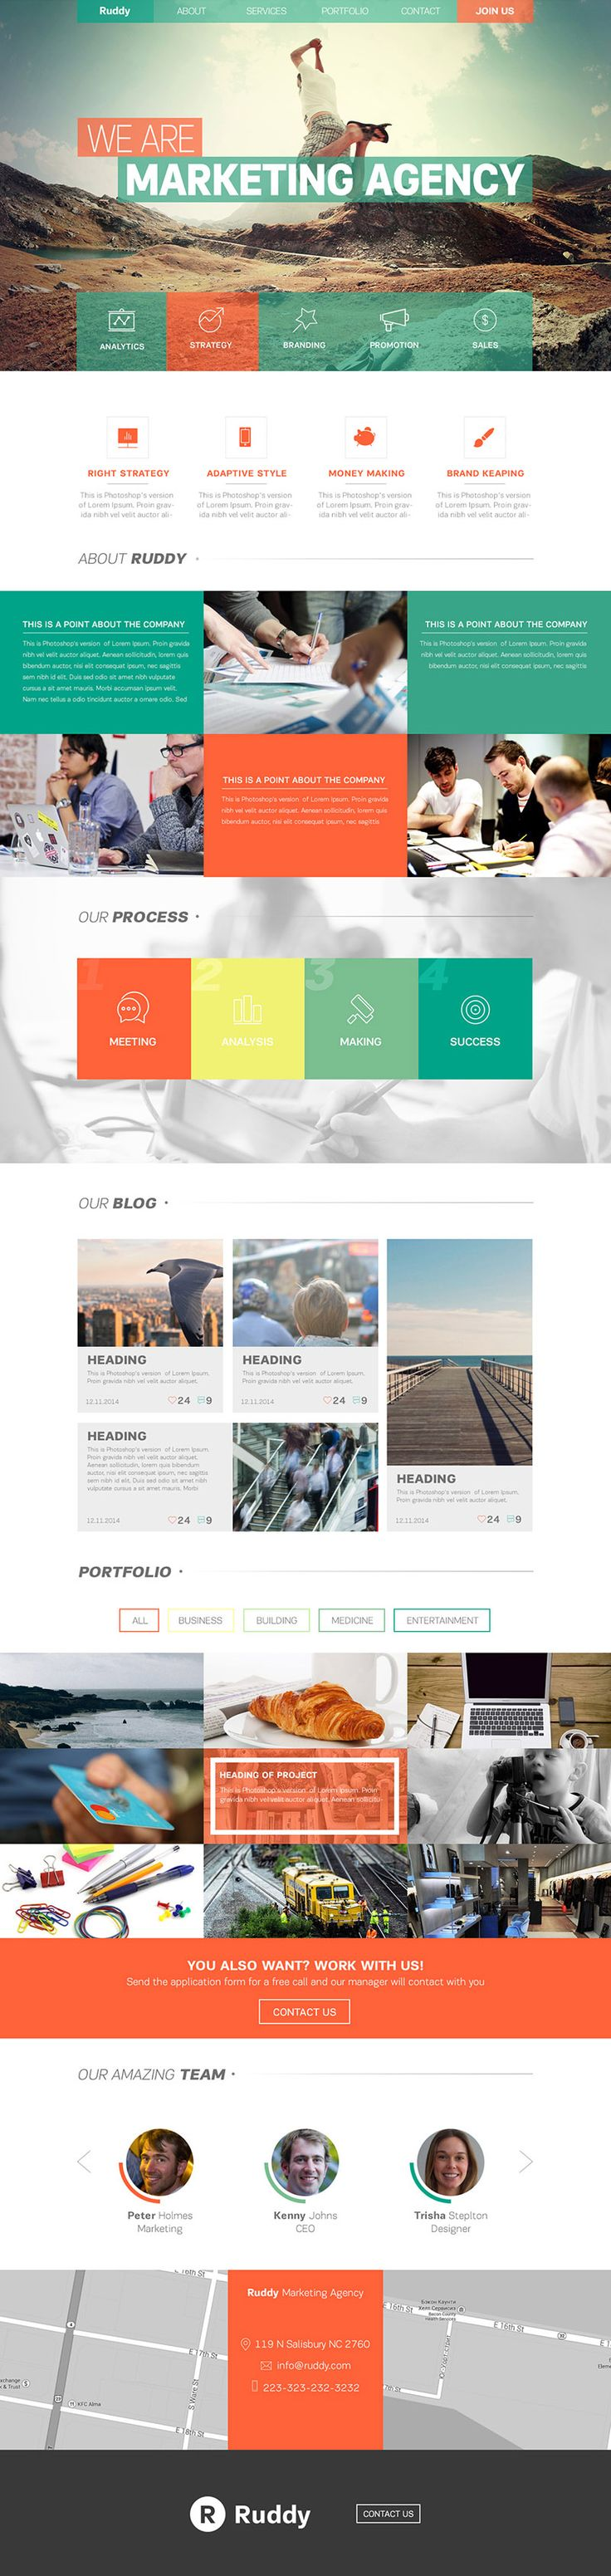 Awesome High Quality 45+ Free Corporate And Business Web Templates PSD. Here is…